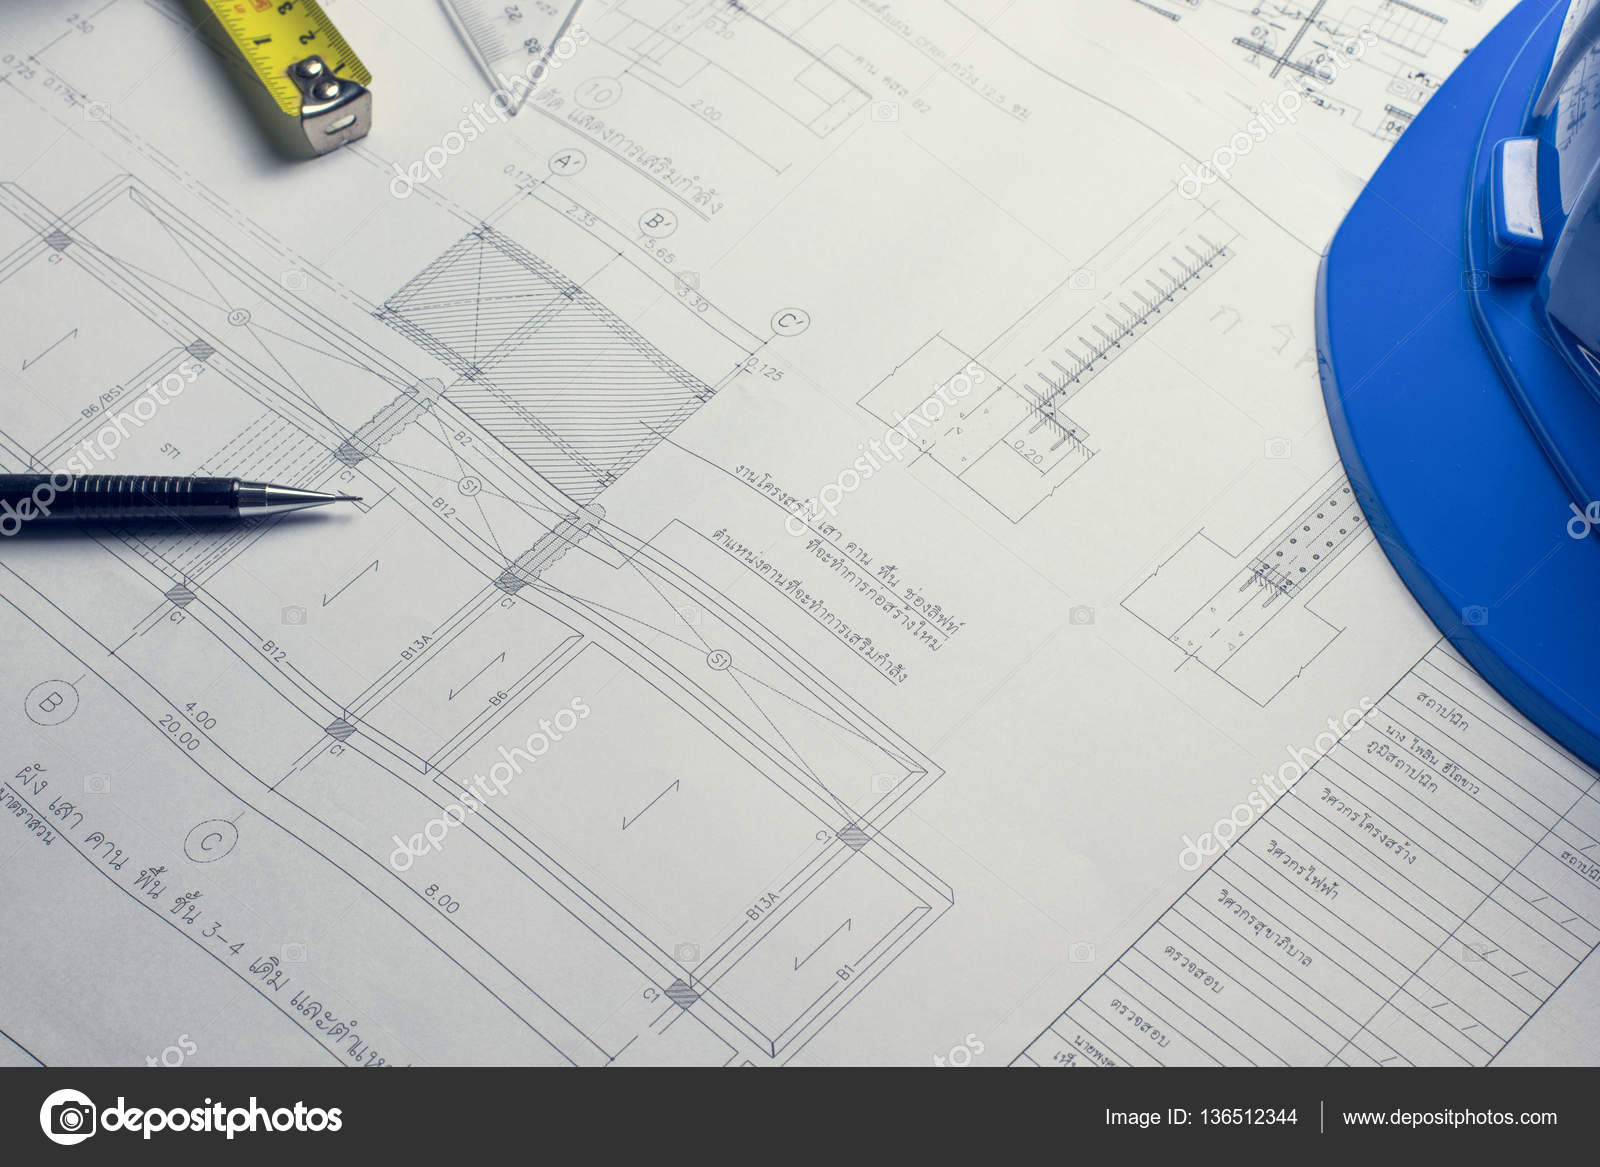 Architectural blueprints and blueprint rolls and a drawing instr ...